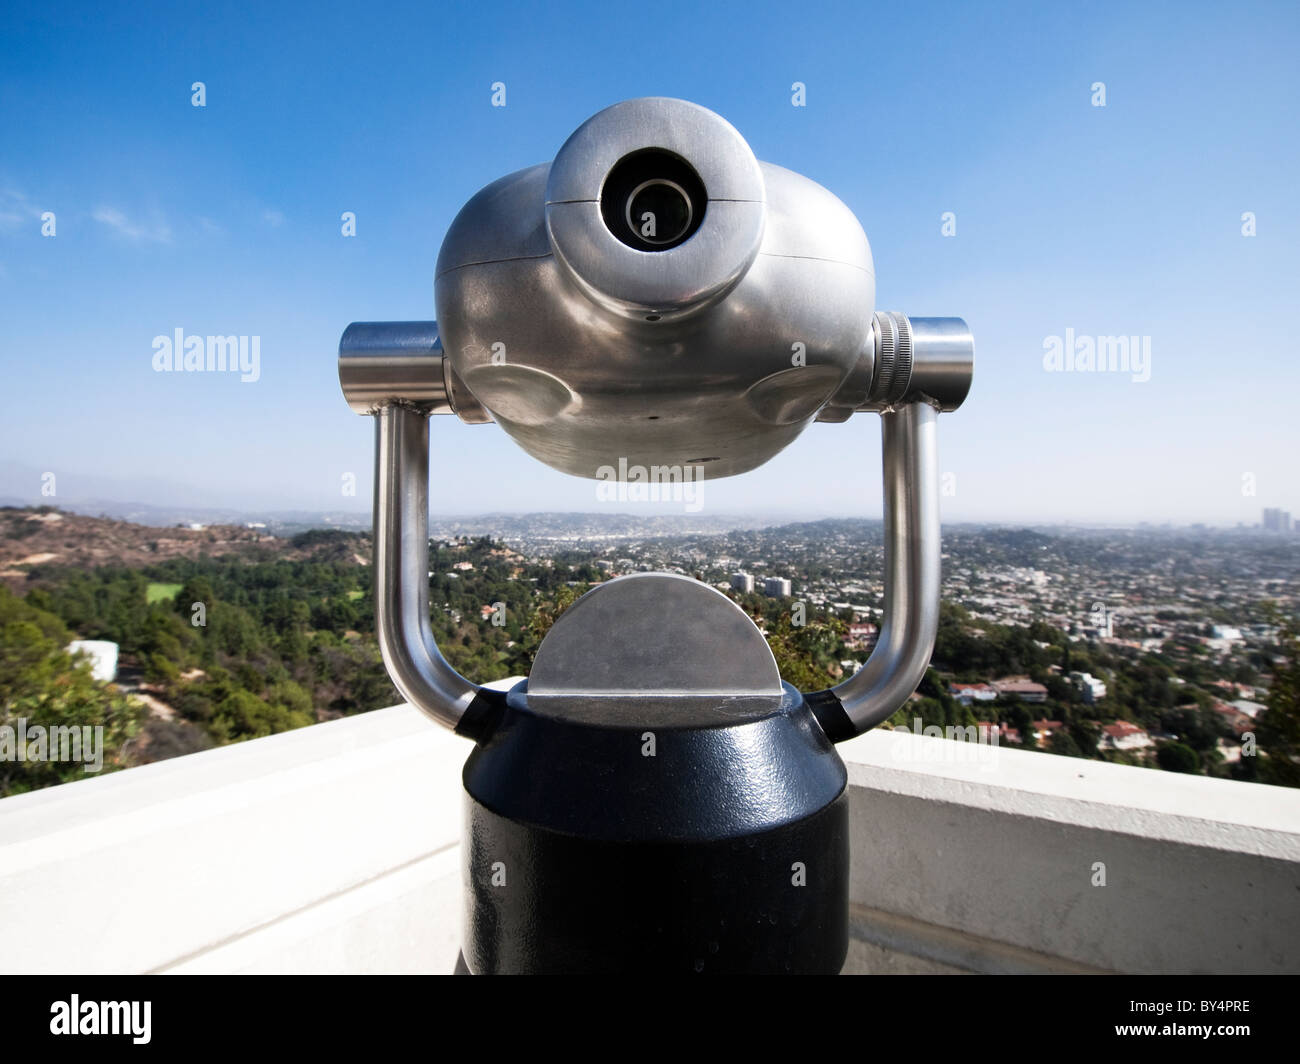 Coin-operated telescope, with Los Angeles in the background, at the Griffith Park Observatory, Hollywood California. - Stock Image